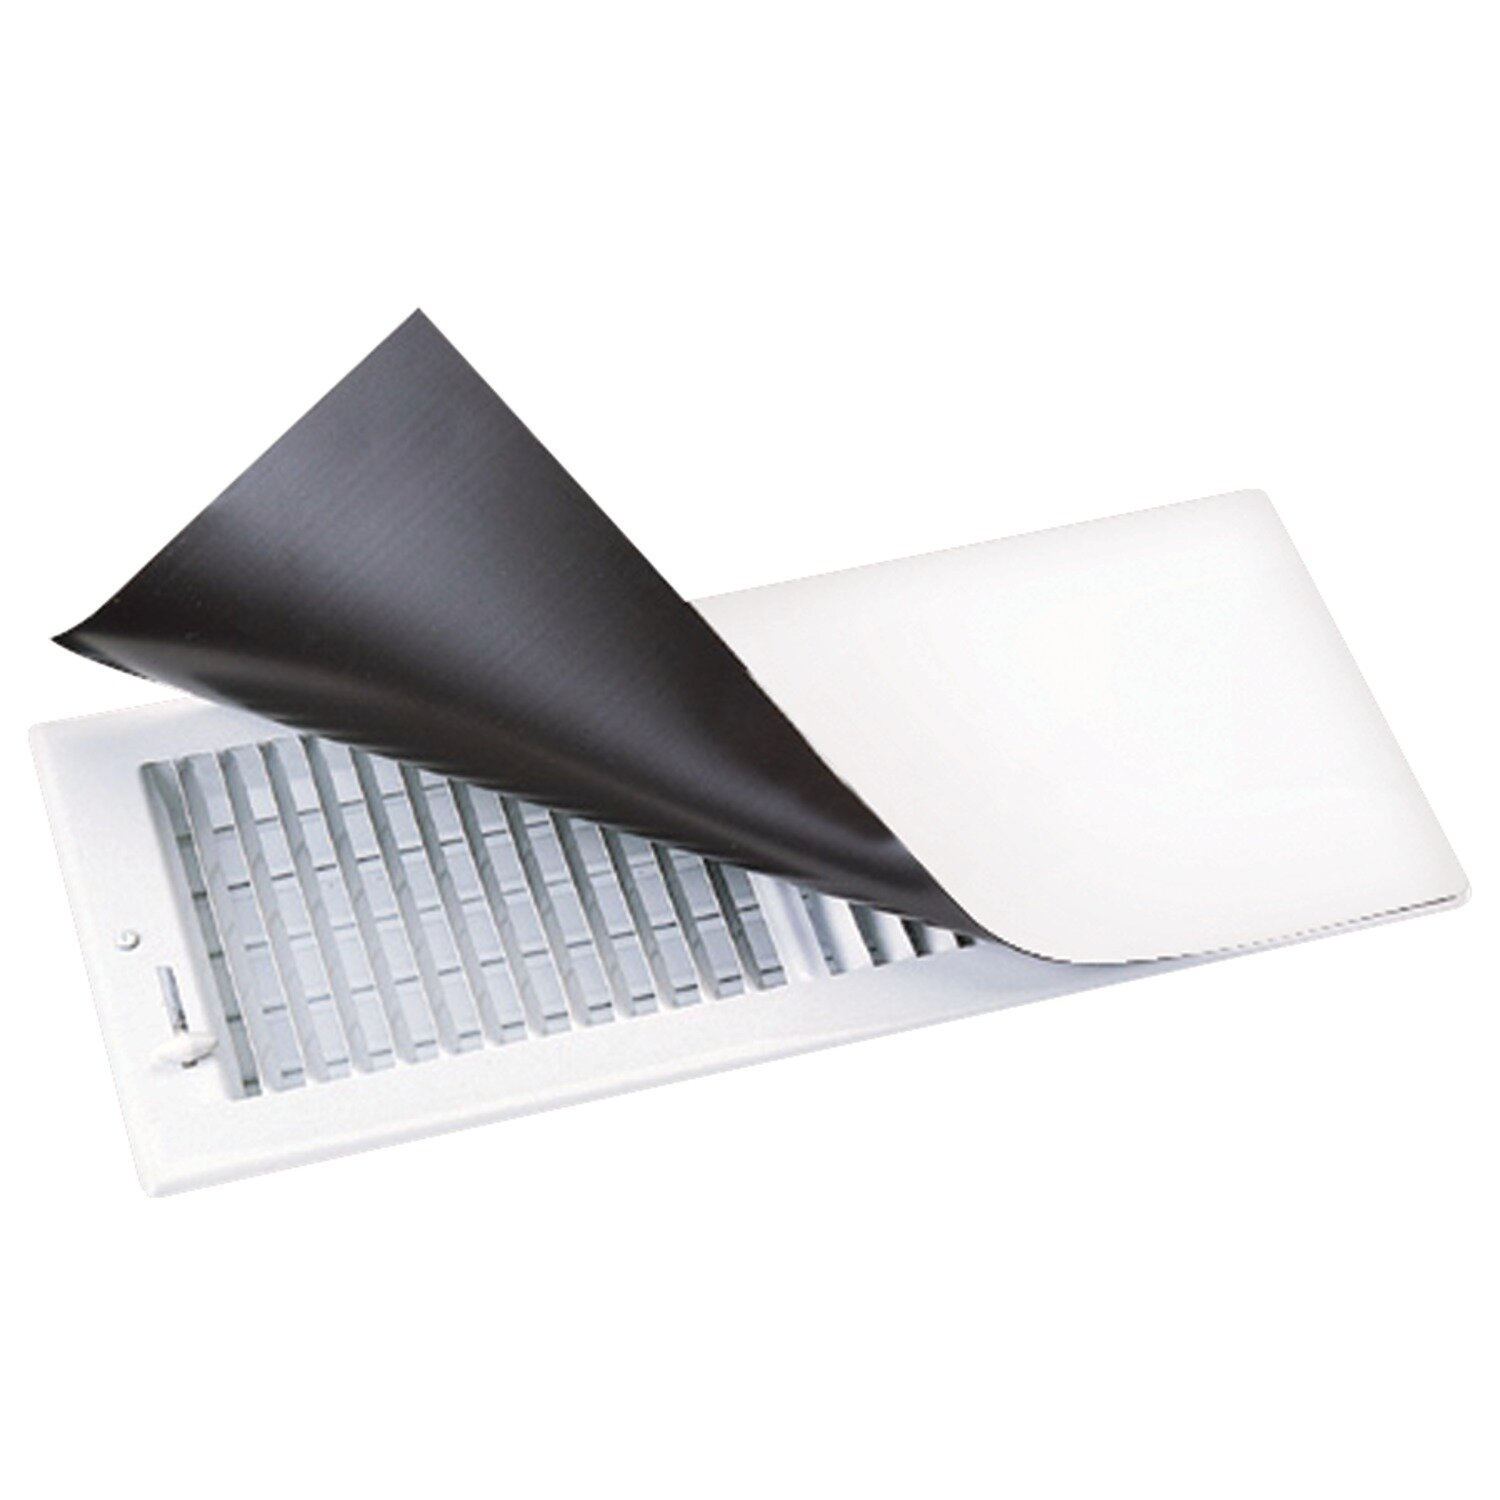 vent magnetic air grilles reachable ceilings covers ceiling supply drop filter industrial cover